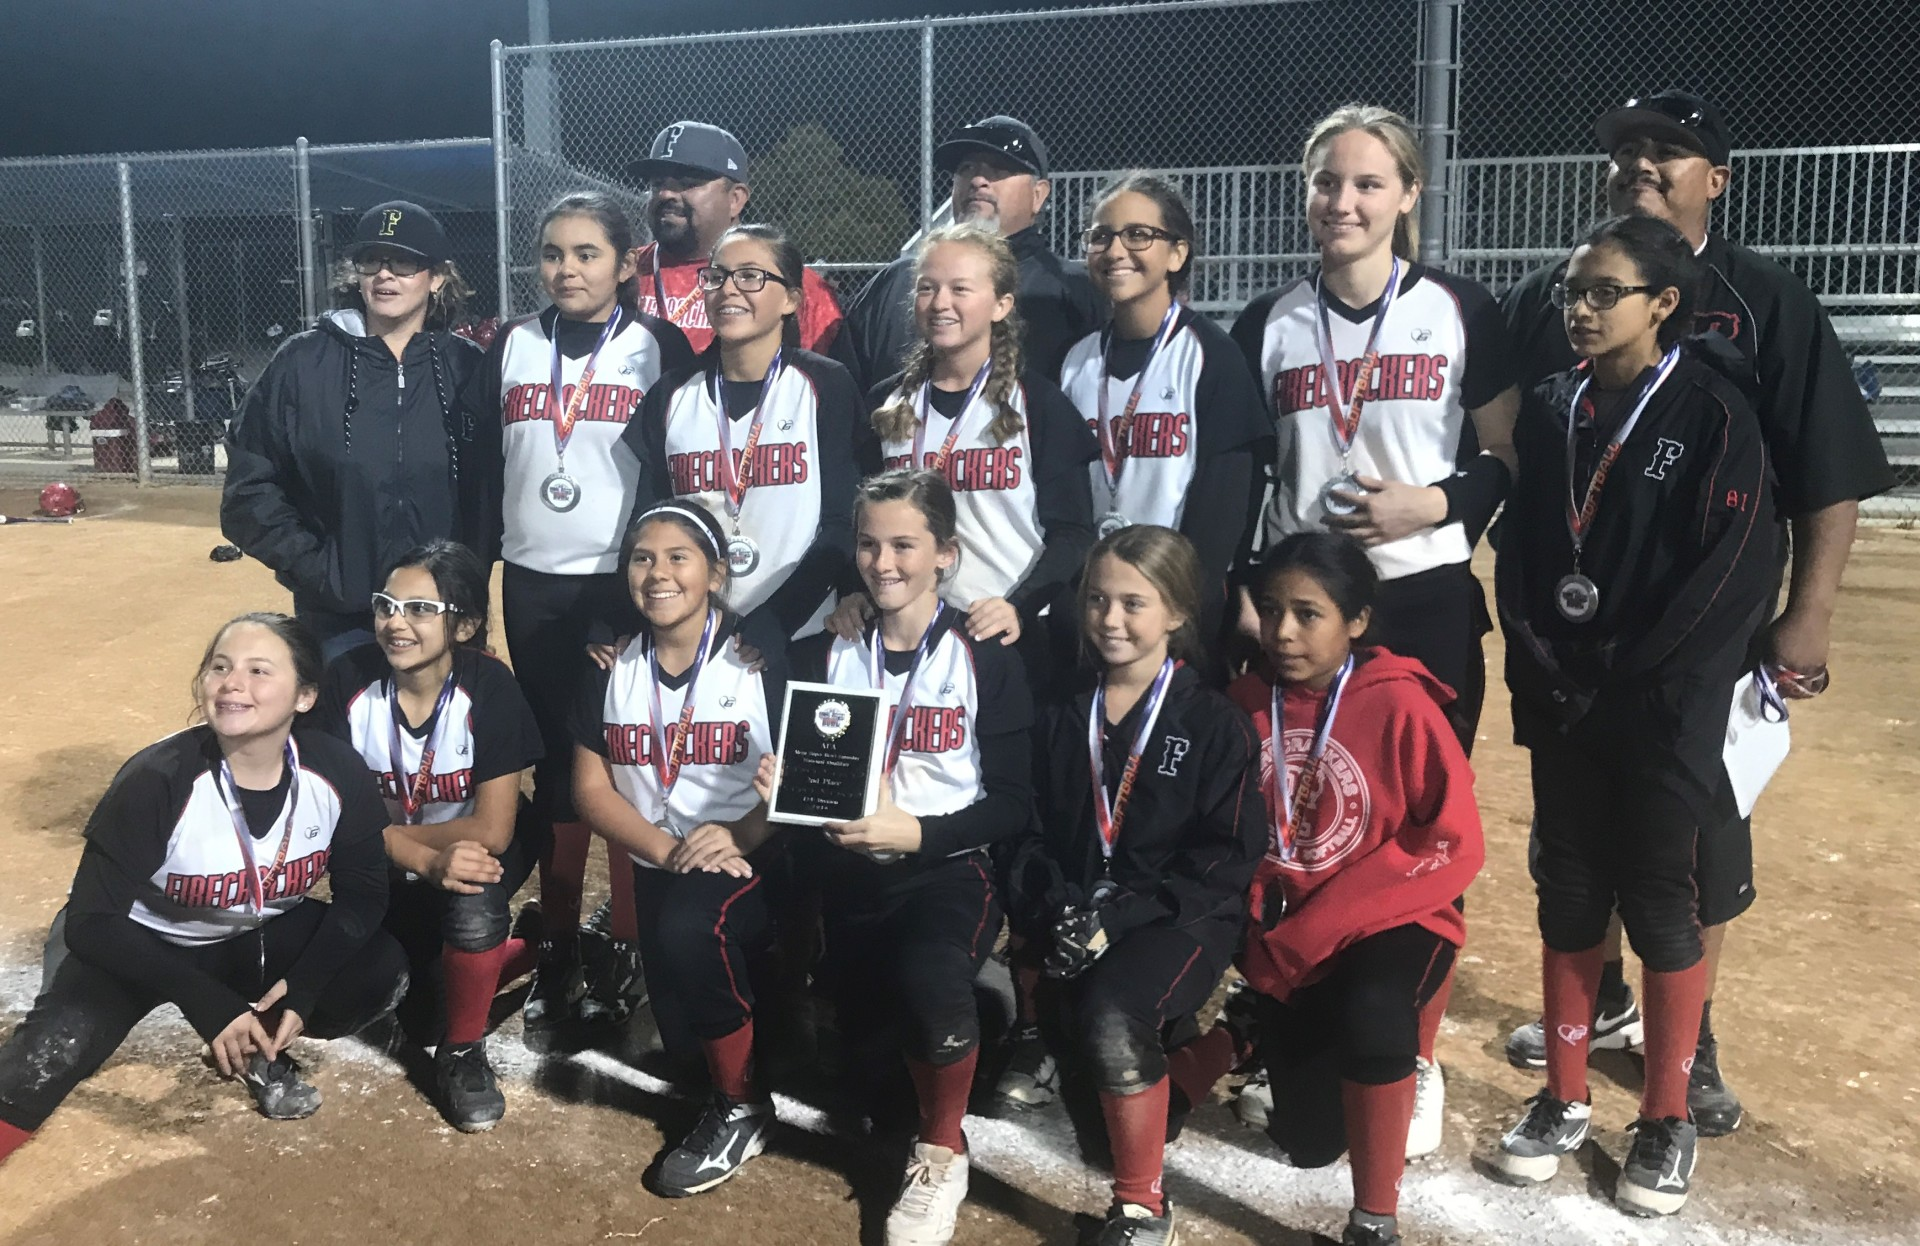 12u - Runner Up - Firecrackers - Garcia